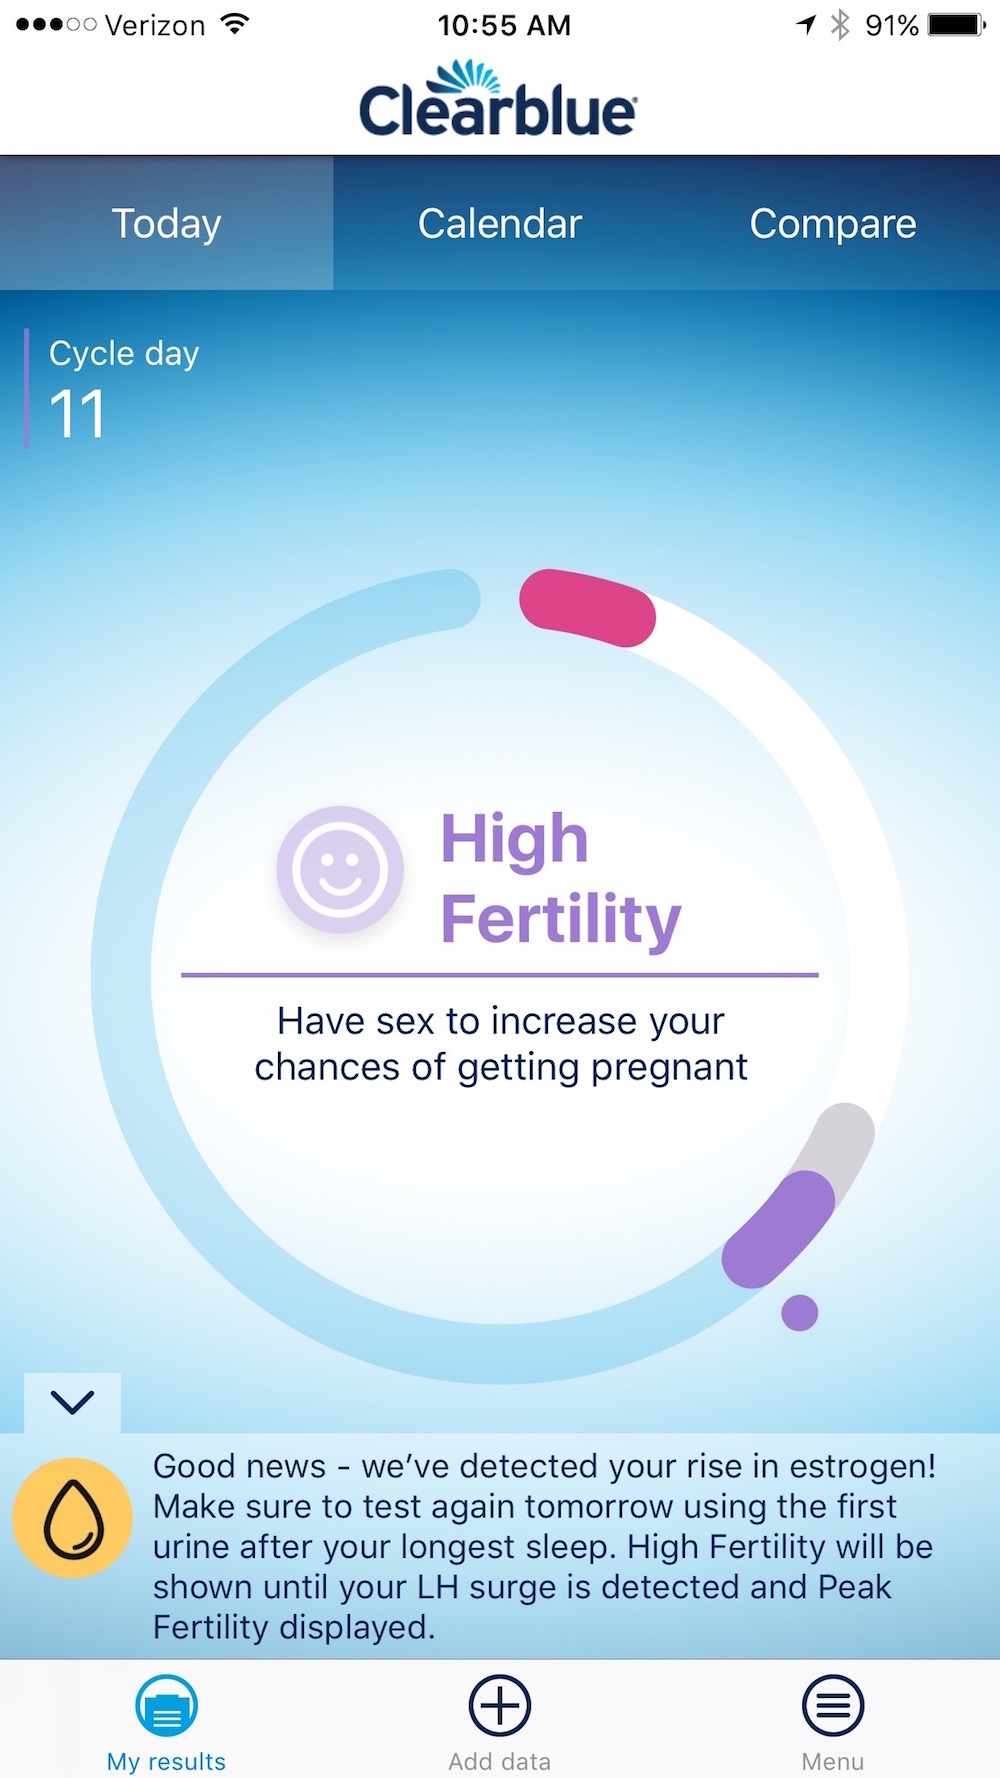 Using This System Has Been Asend Its Made Planning For A New Baby So Much Easier I Dont Have To Worry About Missing My Most Fertile Times Now A Days